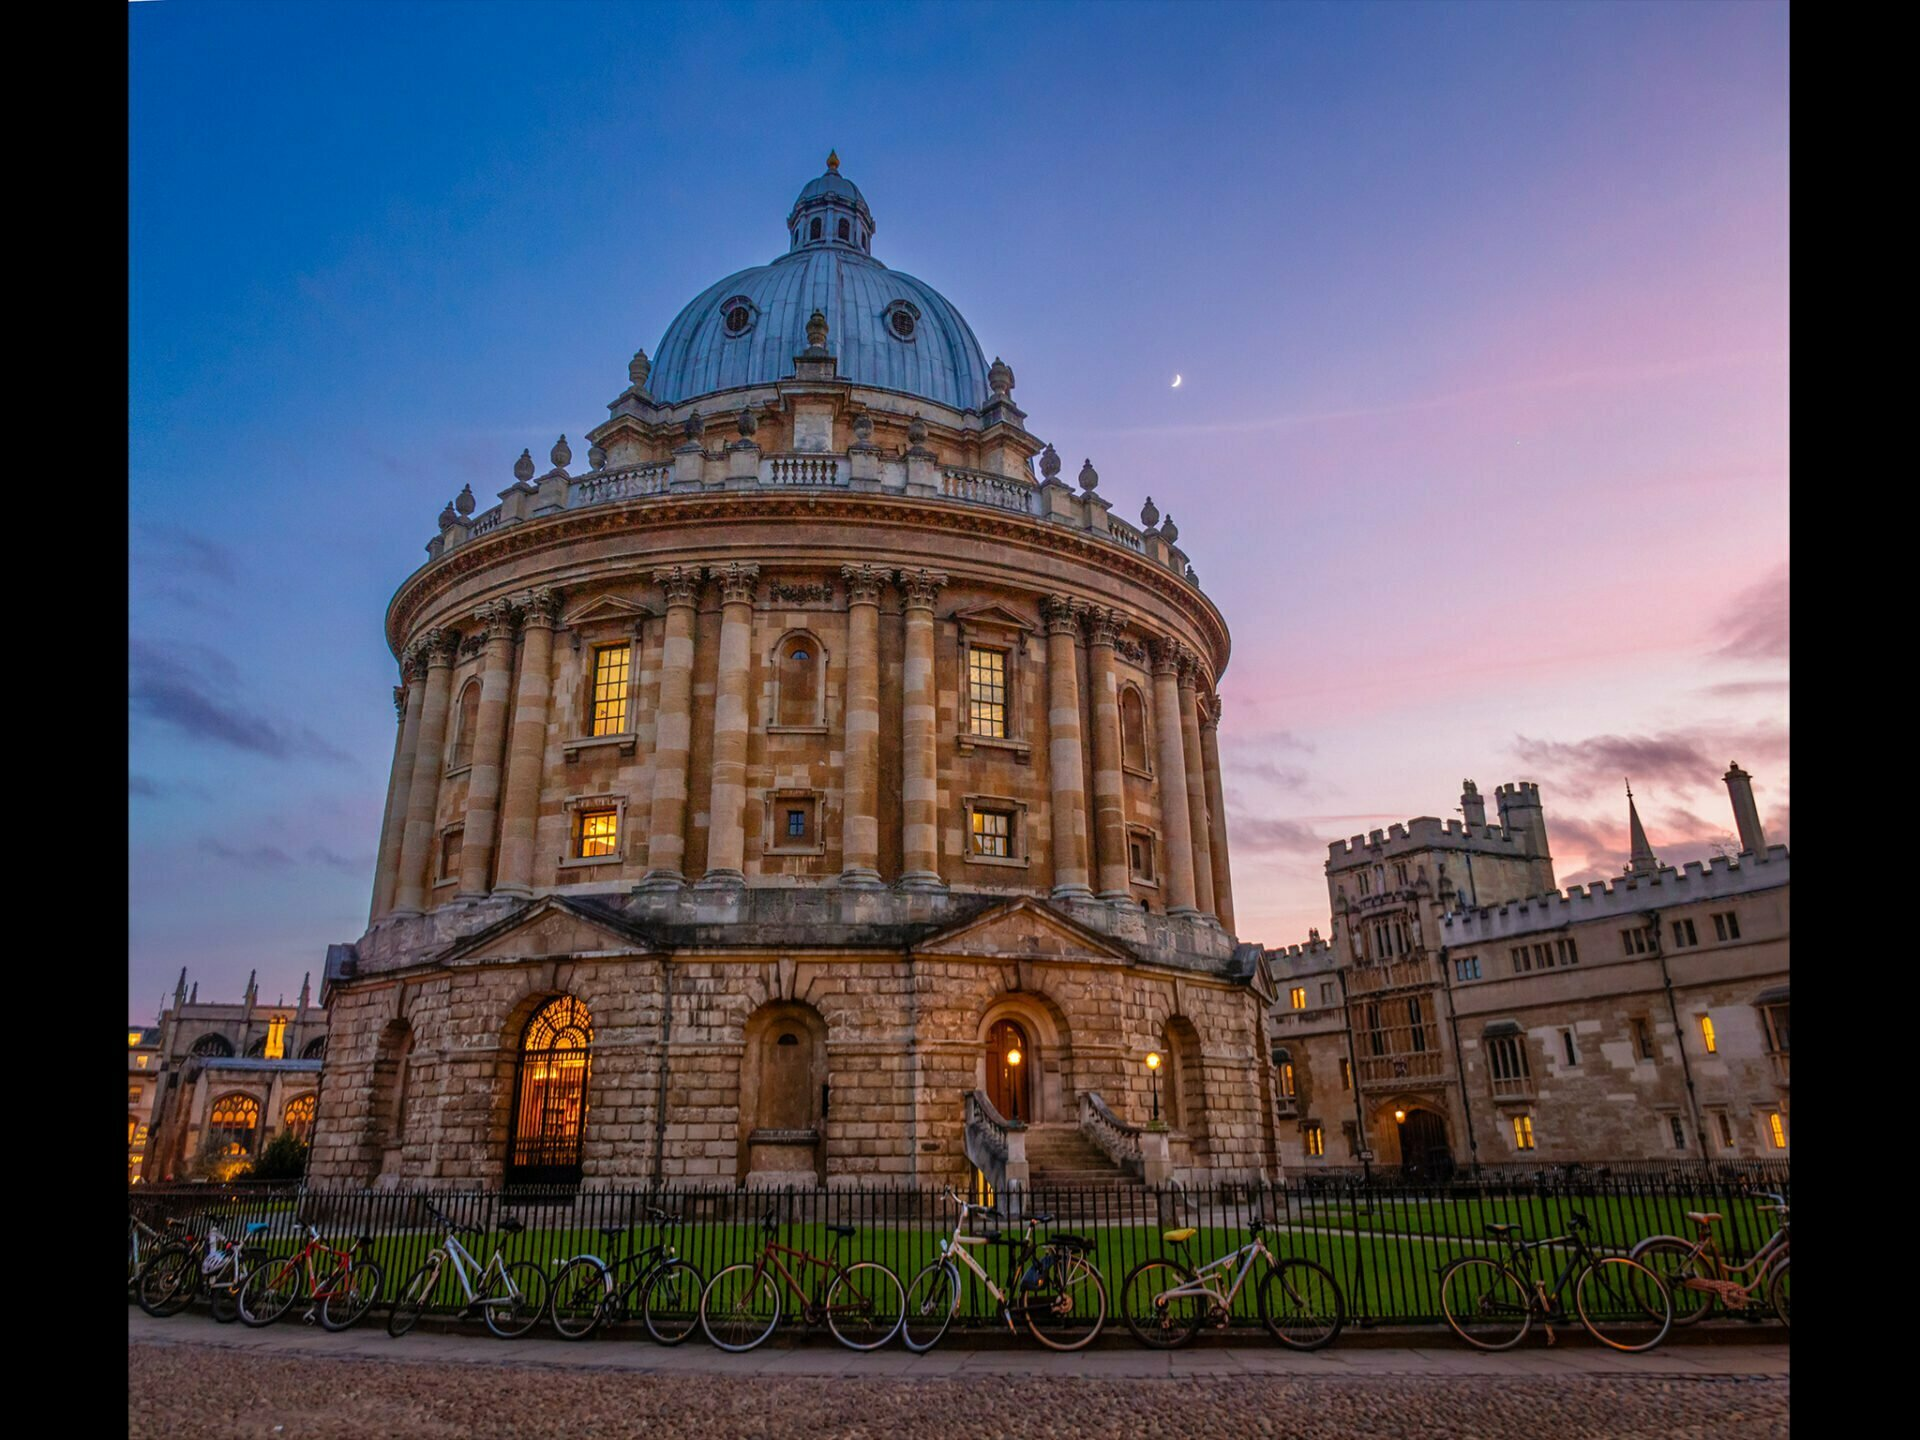 The Radcliffe Camera with a beautiful pink and blue sky behind with the moon barely visible